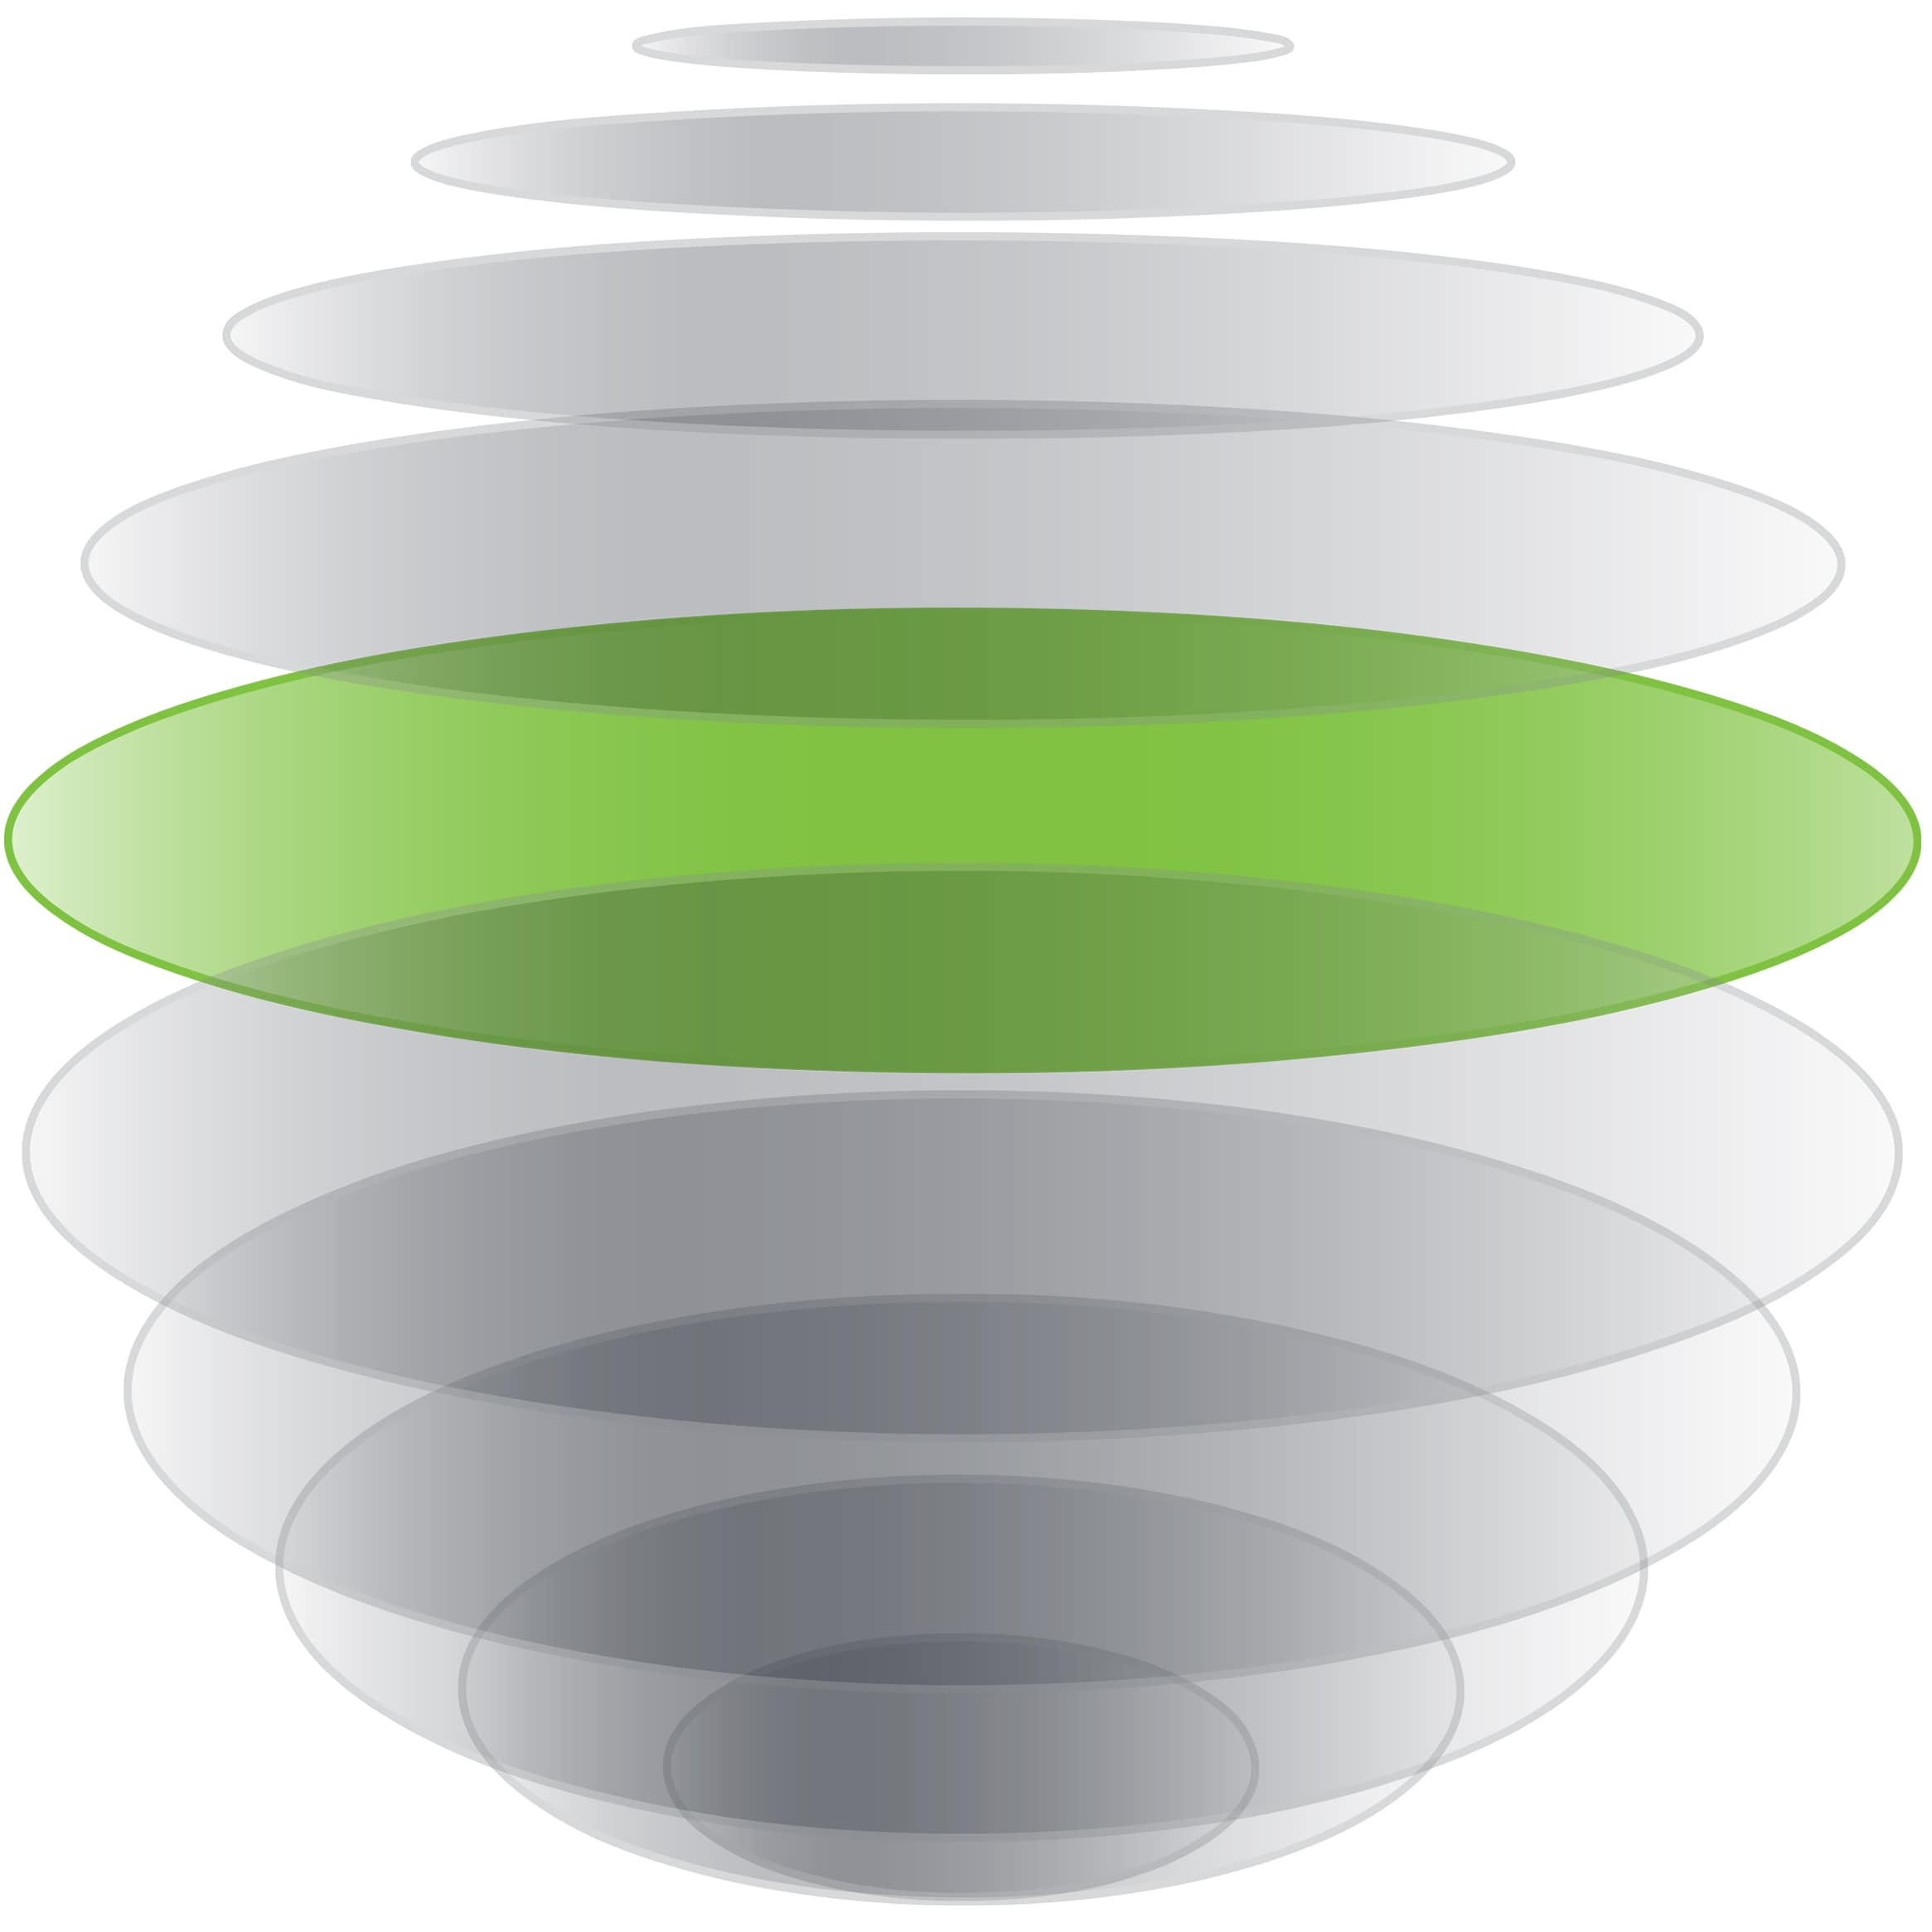 Global indirect tax rates | Deloitte | Tax Services